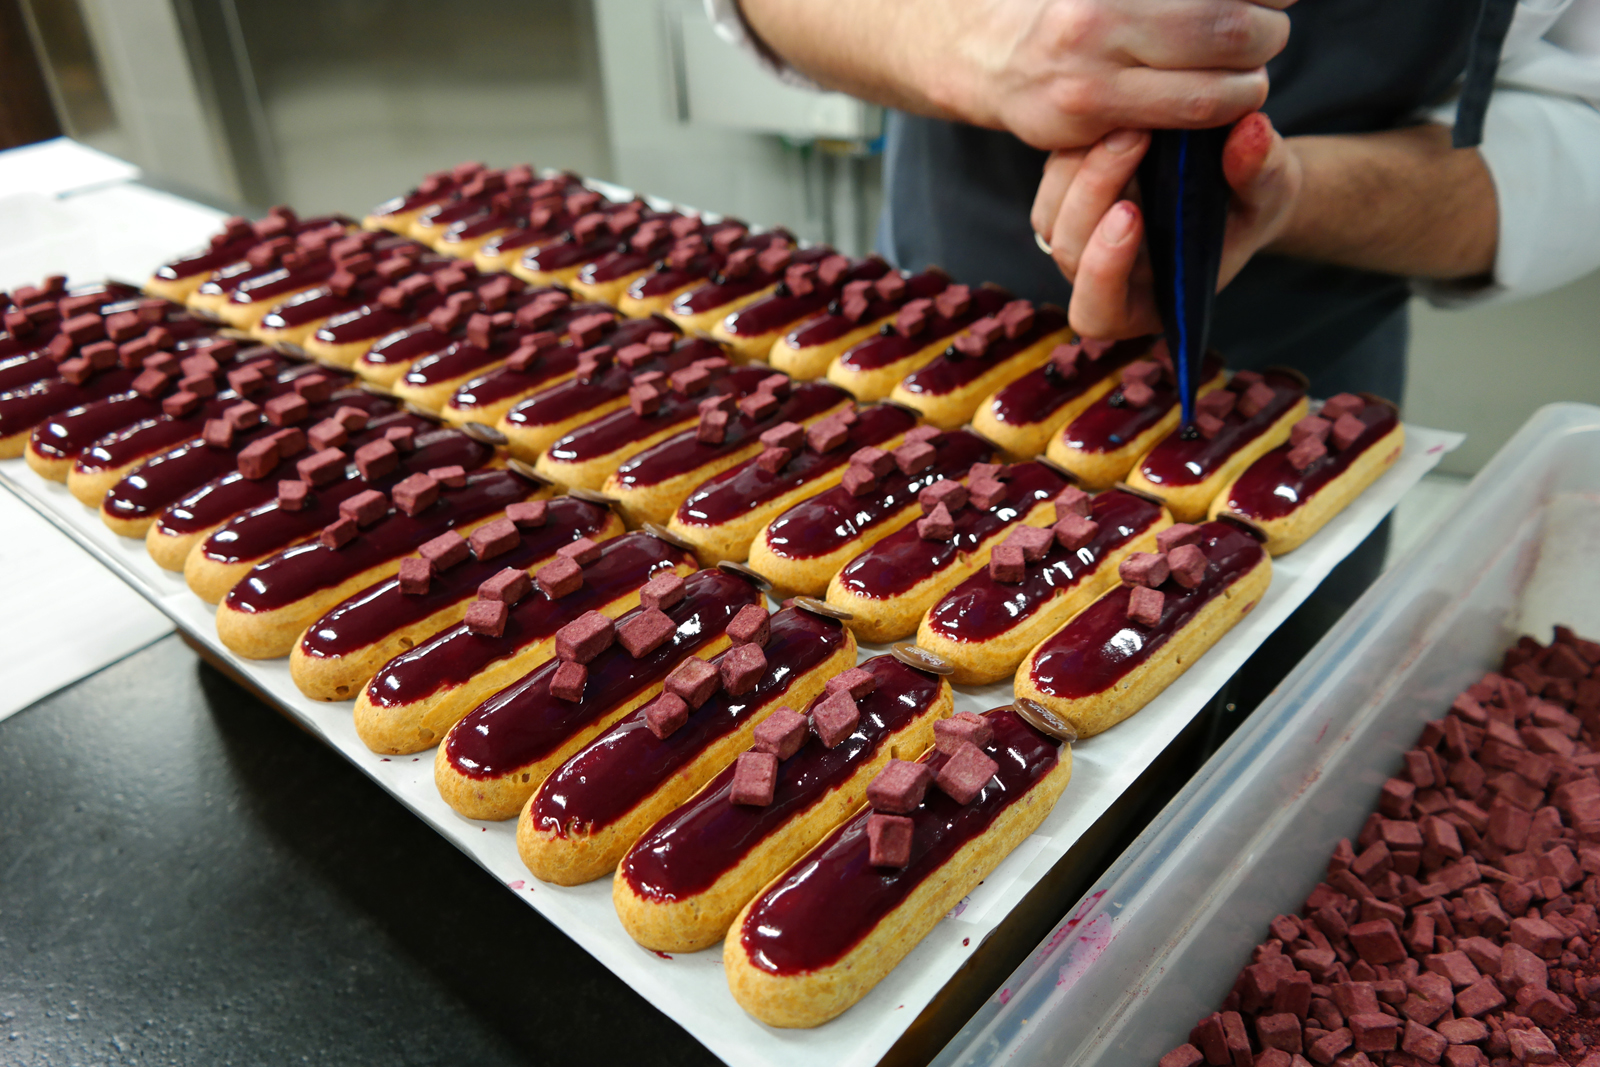 Eclair-cassis-L-Eclair-de-Génie-La-Fabrique-Christophe-Adam-atelier-réalisation-patisseries-desserts-photo-by-United-States-of-Paris-blog